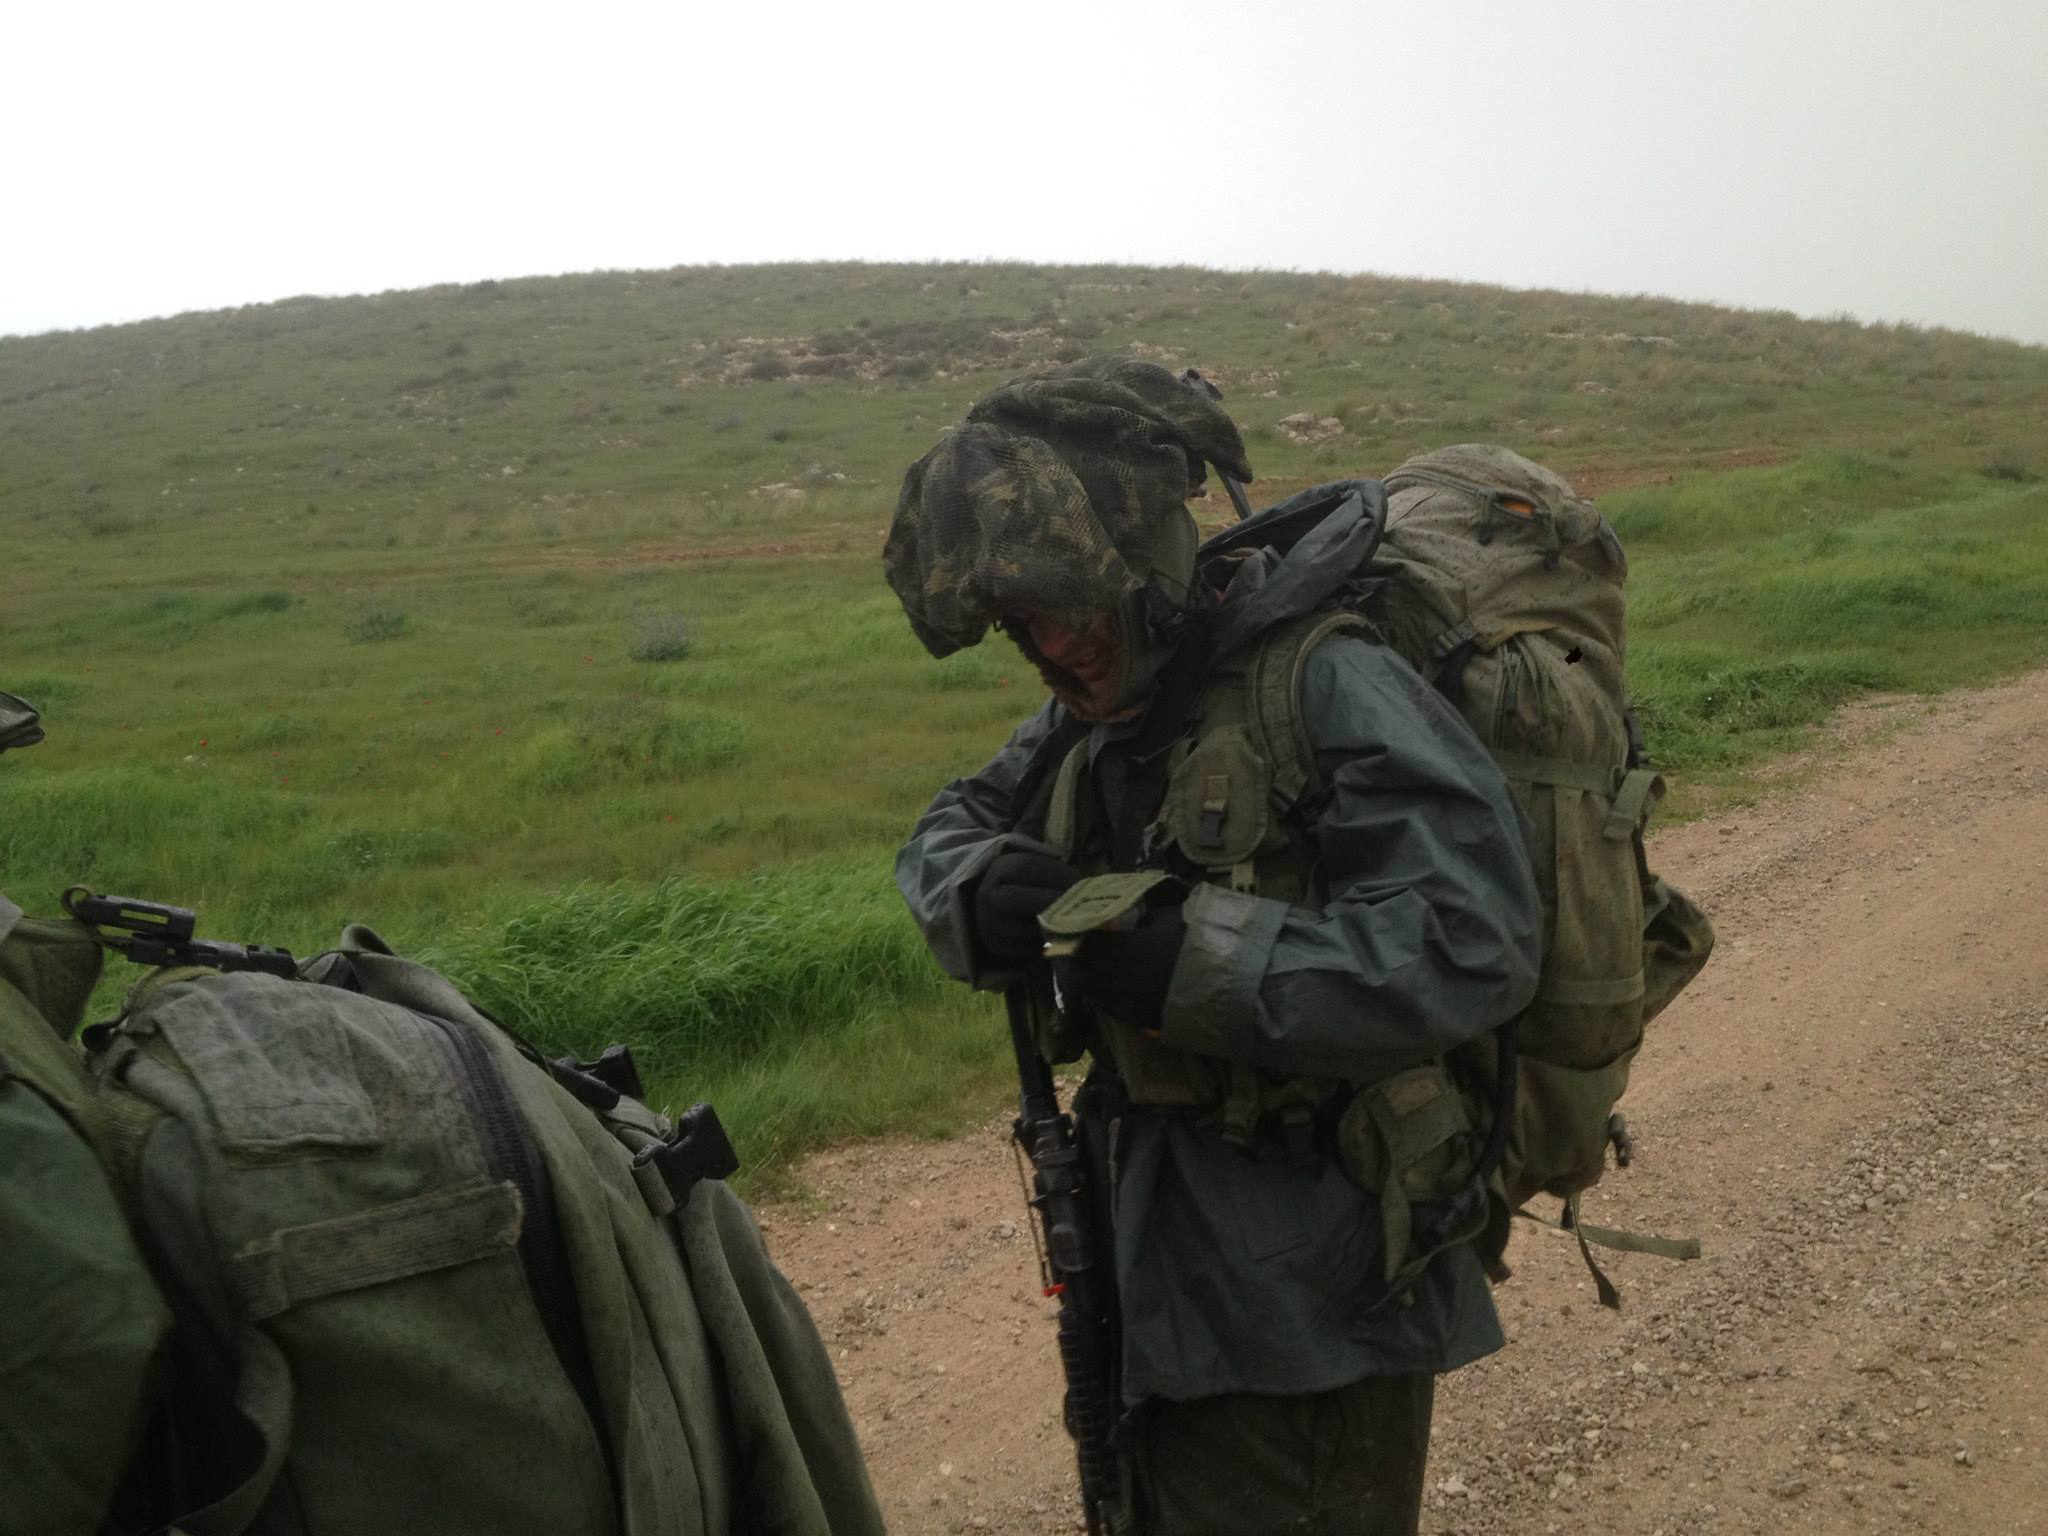 Typical IDF Rain gear, very lose and weak.